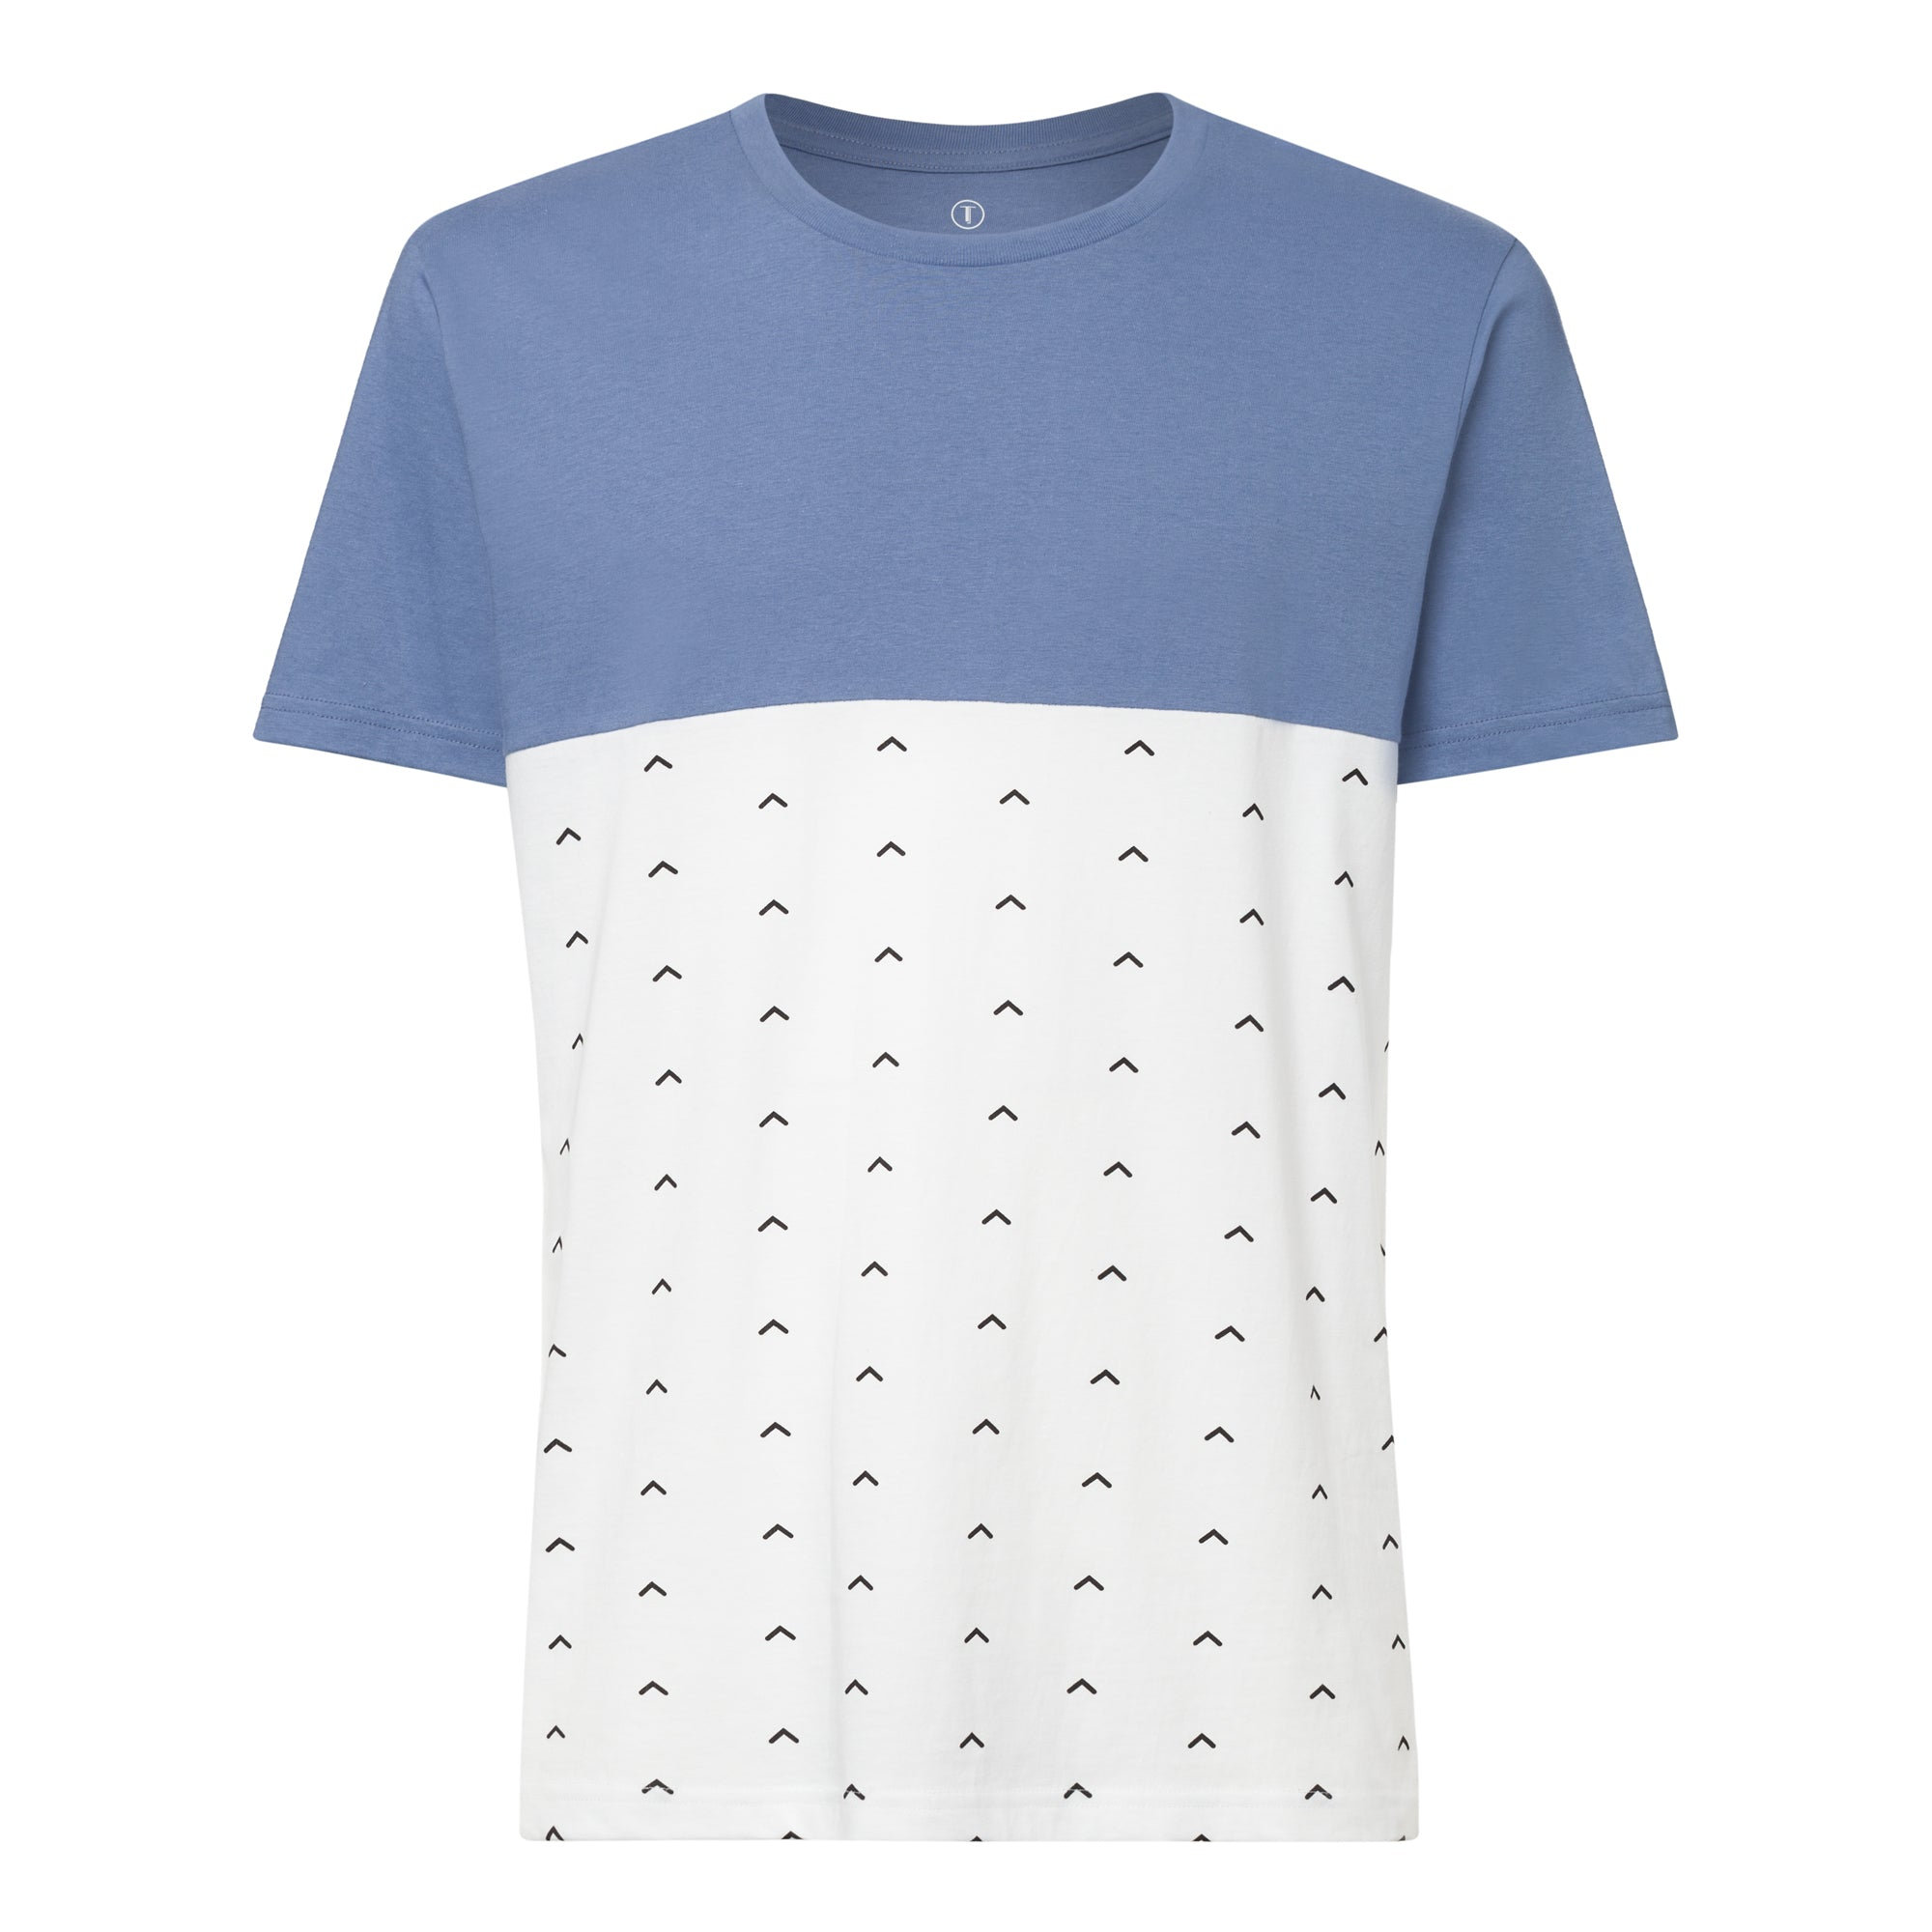 Upwards T-Shirt ironblue/white GOTS & Fairtrade